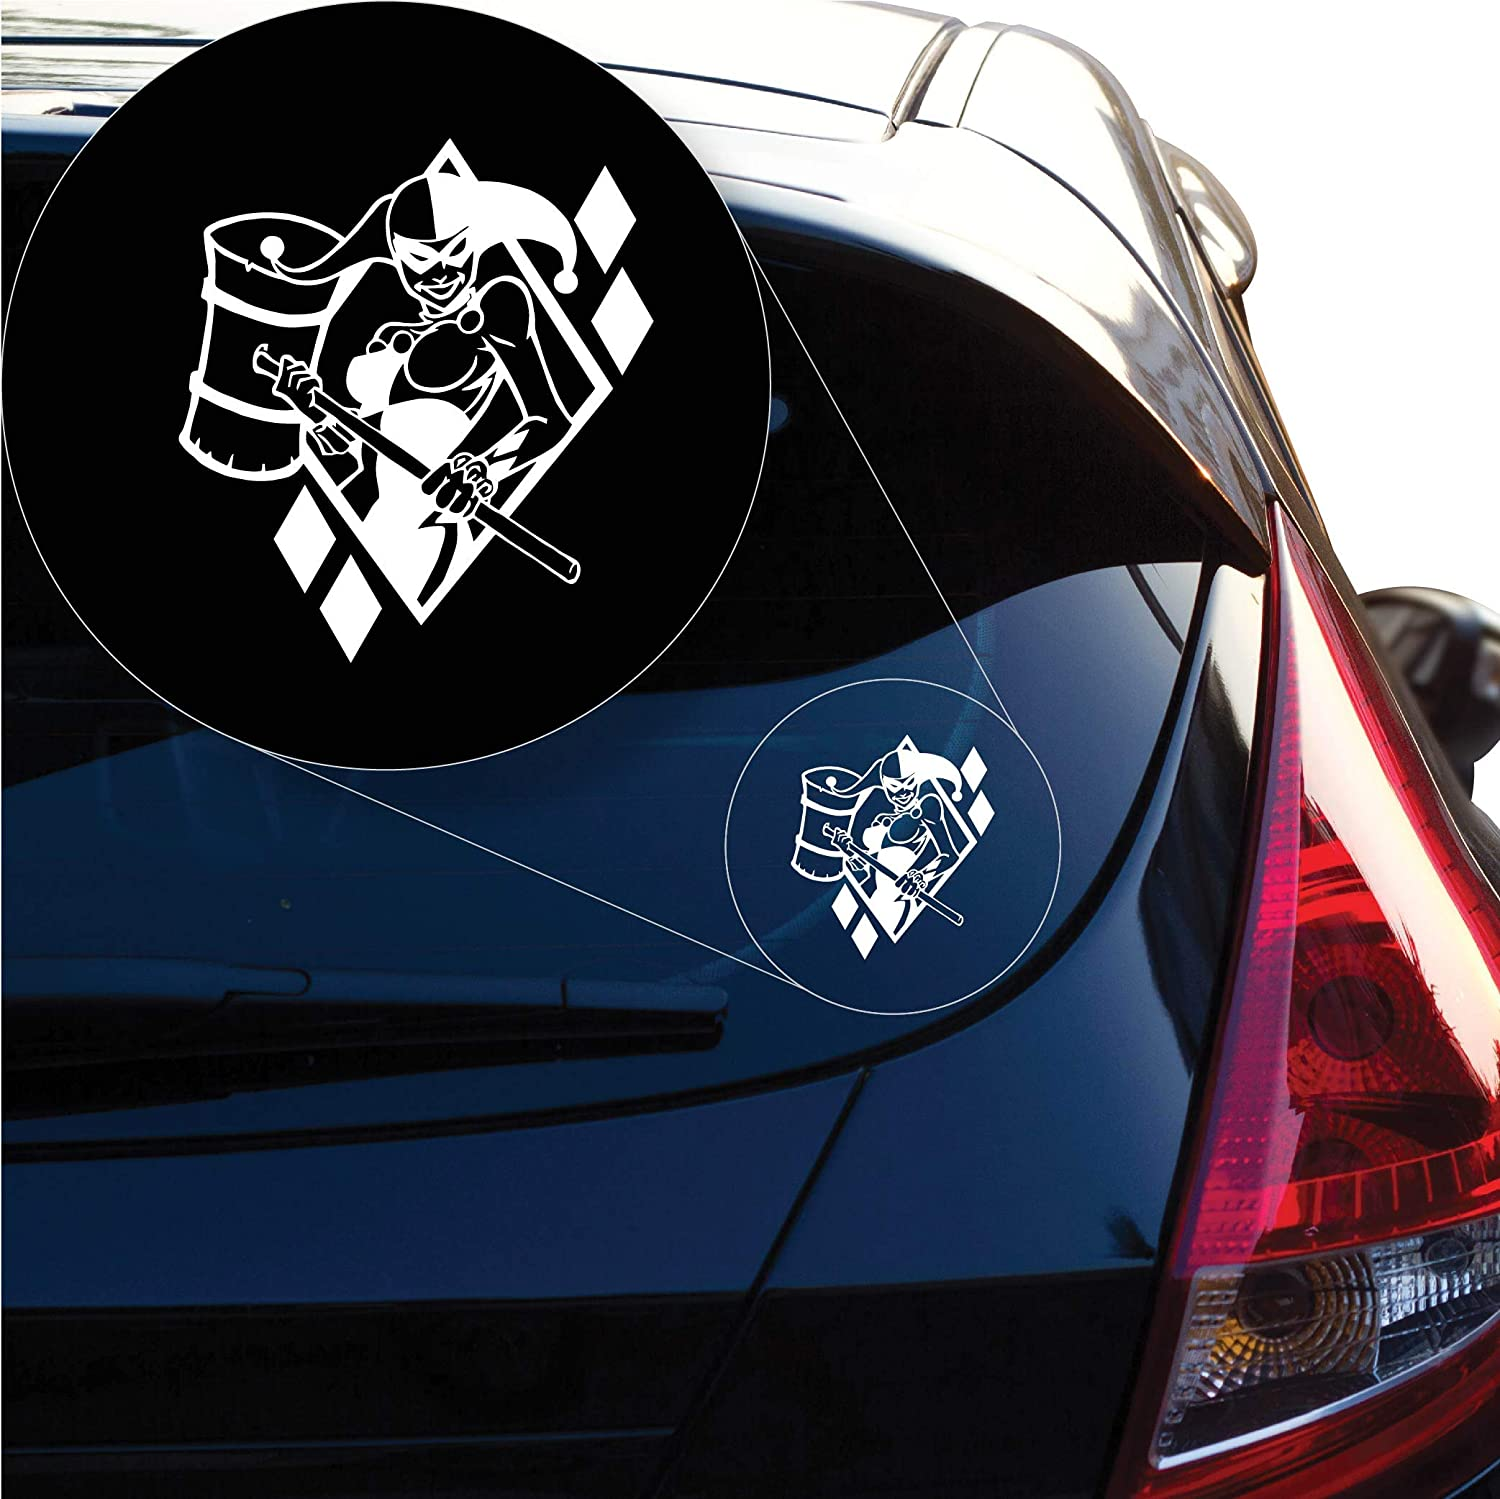 Trucks DC Comics Batman Automotive Emblem Sticker Applies Easily to Cars Cellphones Almost Anything Fan Emblems Harley Quinn Logo Car Decal Domed//Red//Black//Chrome Finish Motorcycles Laptops